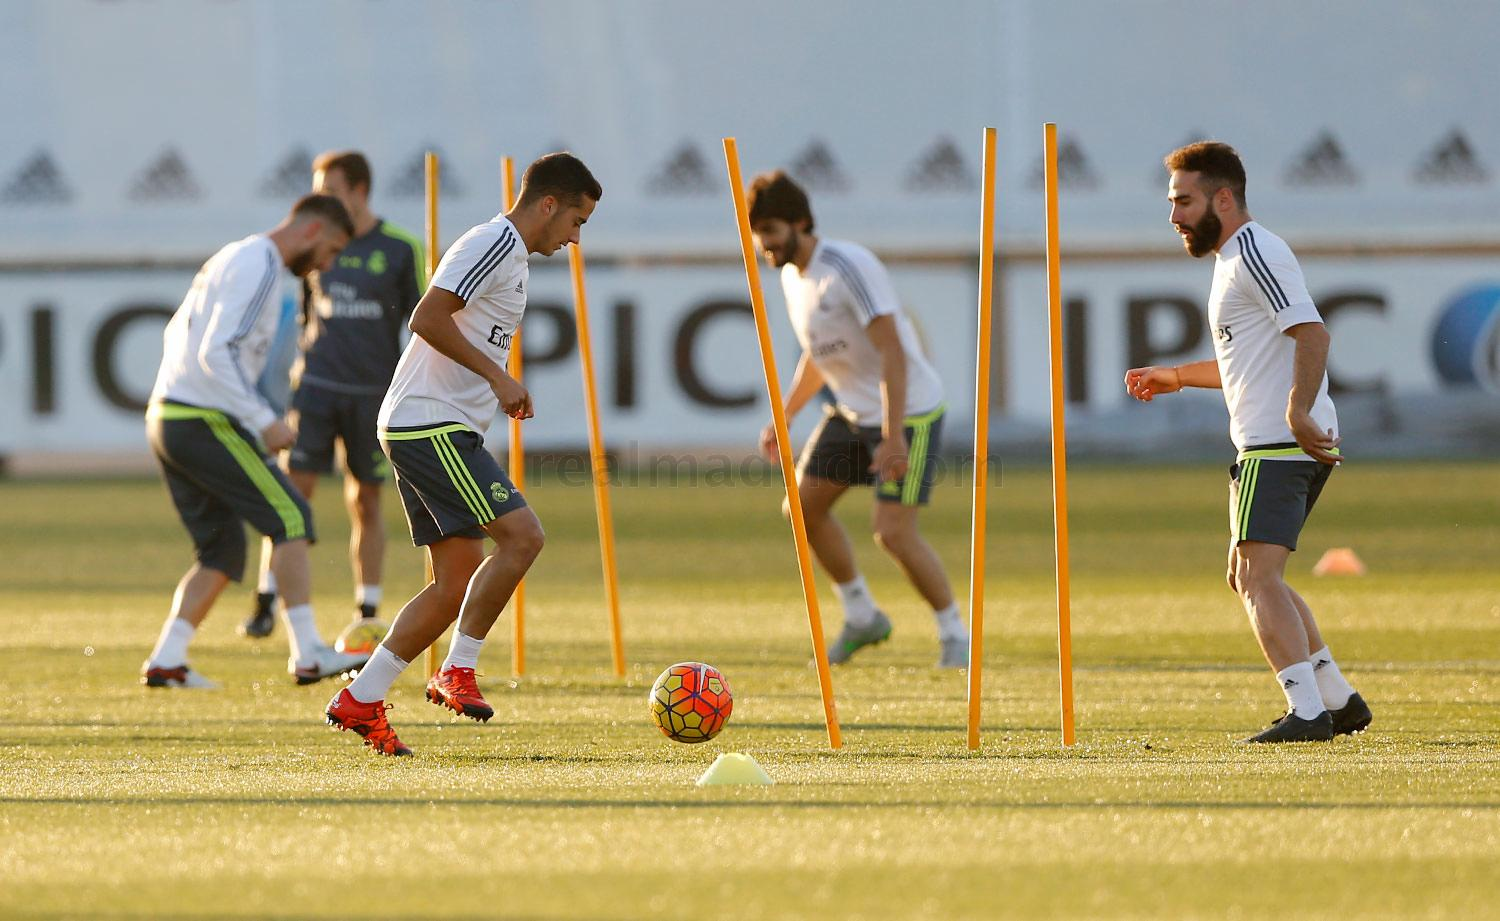 Real Madrid - Entrenamiento del Real Madrid - 16-11-2015